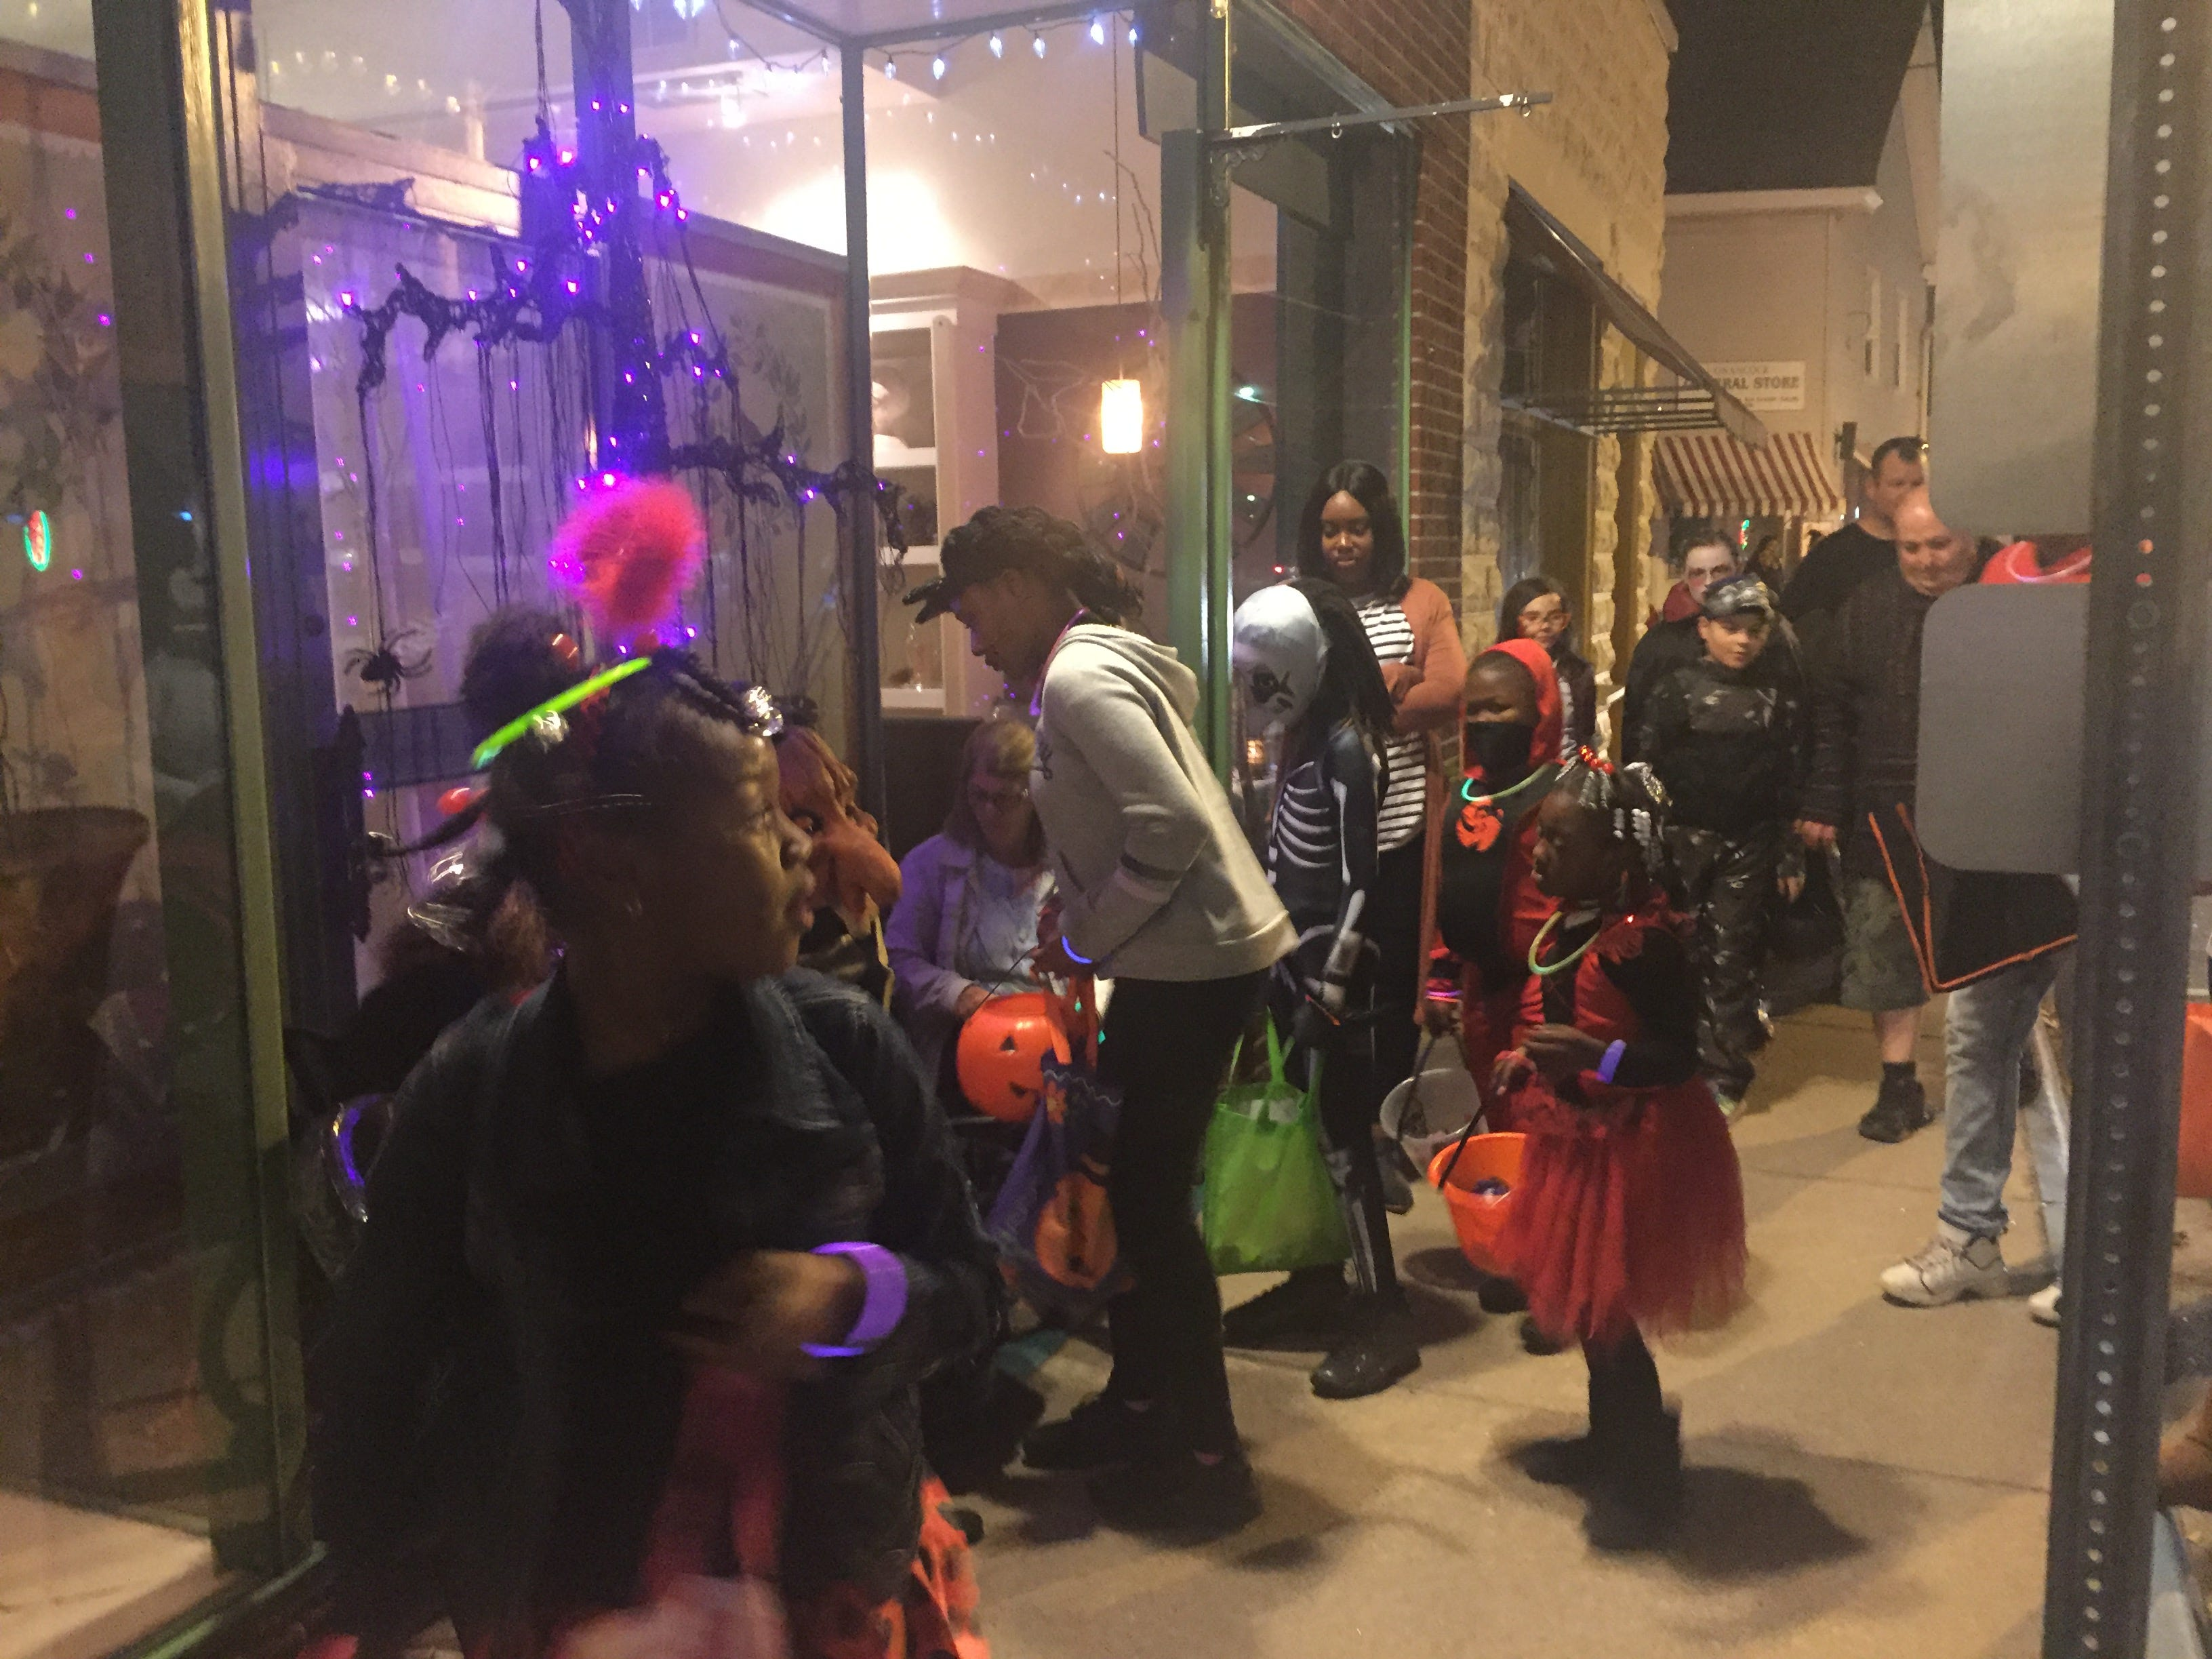 Volunteers pass out candy to trick-or-treaters outside the Charlotte Hotel in downtown Onancock on Wednesday, Oct. 31, 2018.